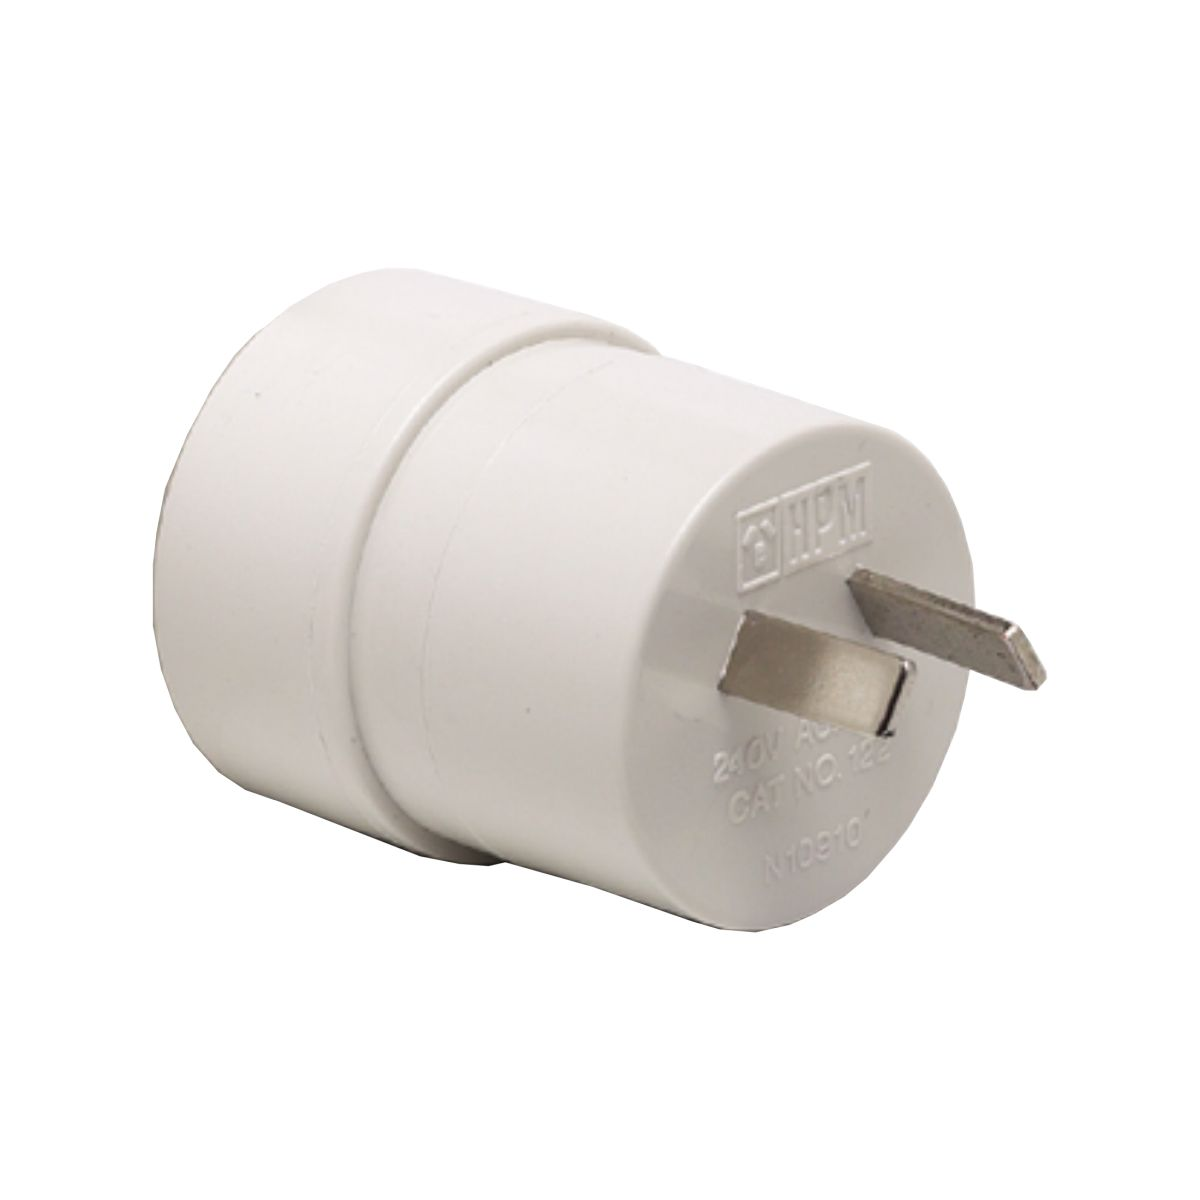 HPM Travel Adaptor Plug White